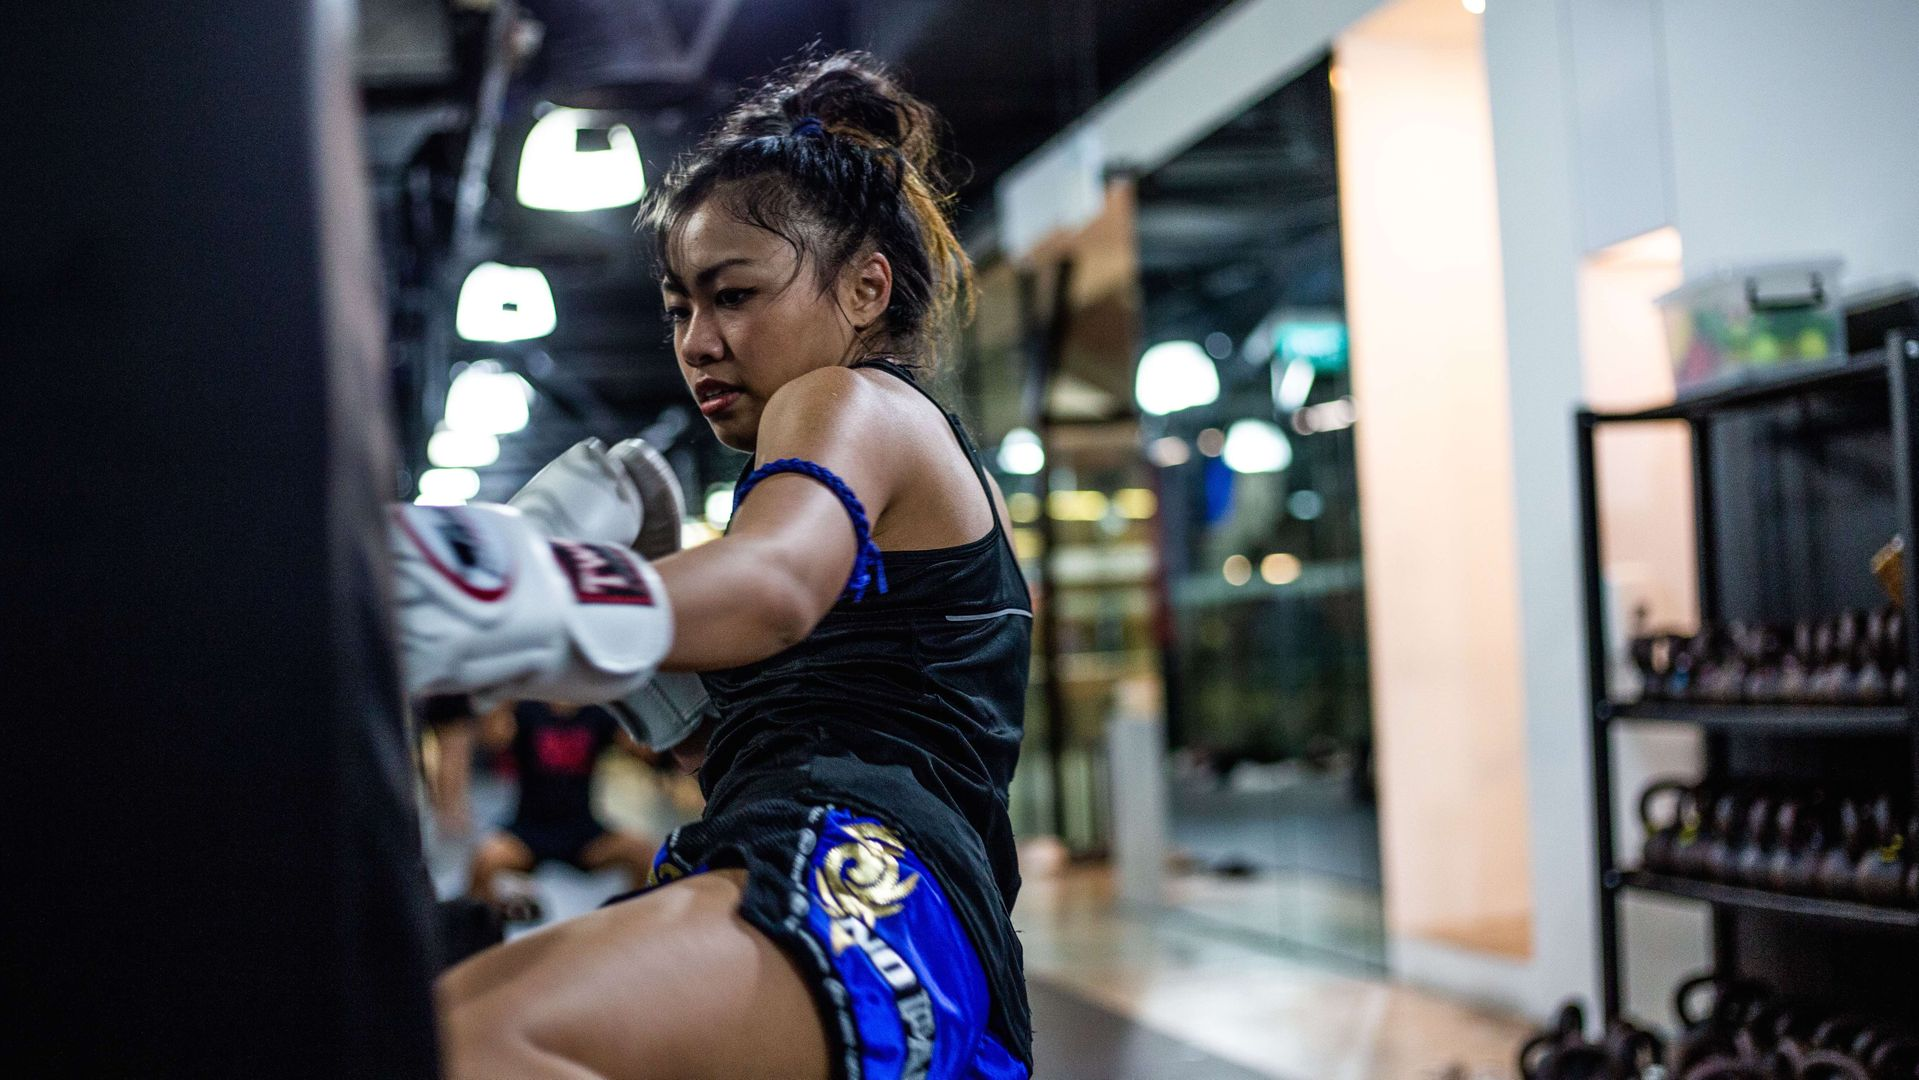 Nissira-Muay-Thai-Bag-Kick